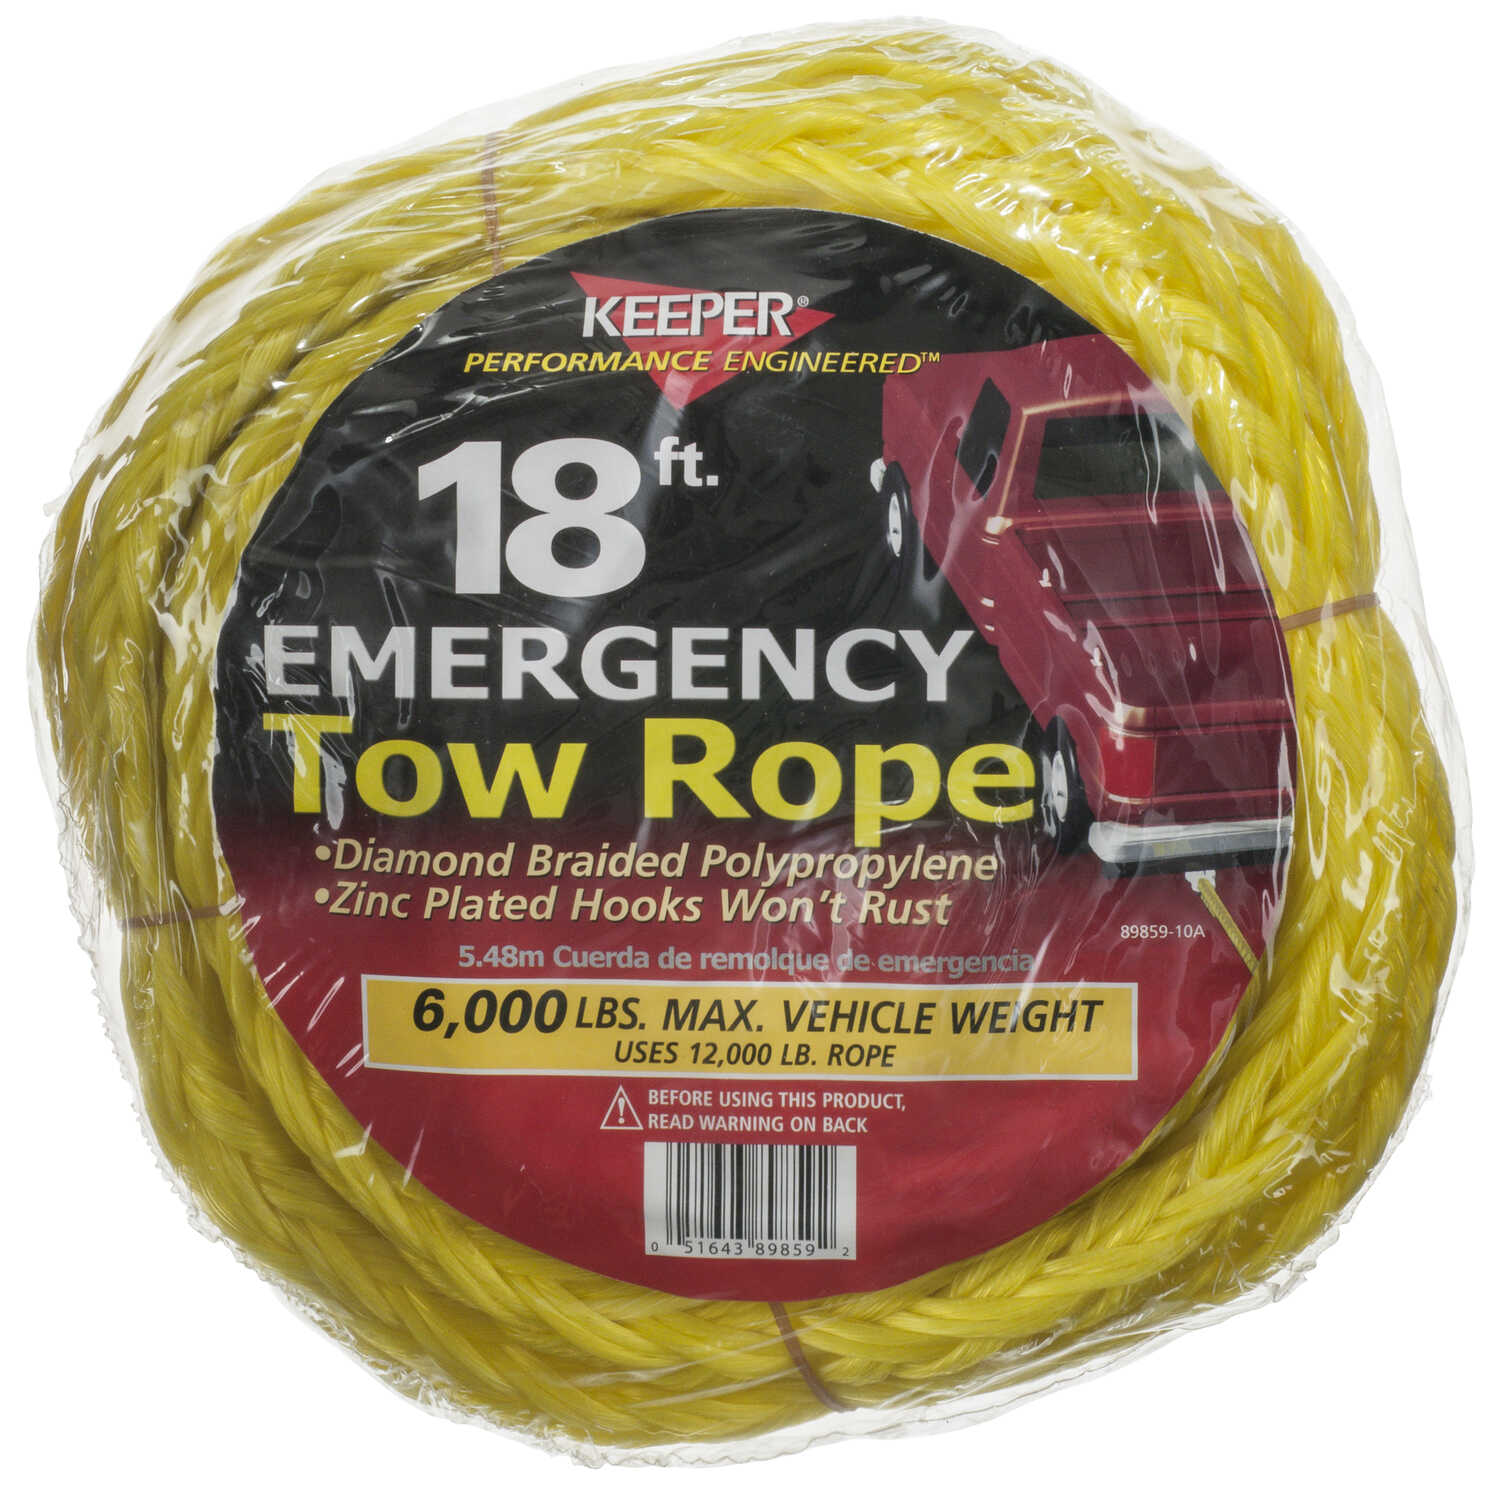 Keeper  18 ft. L Yellow  Tow Rope  6000 lb. 1 pk